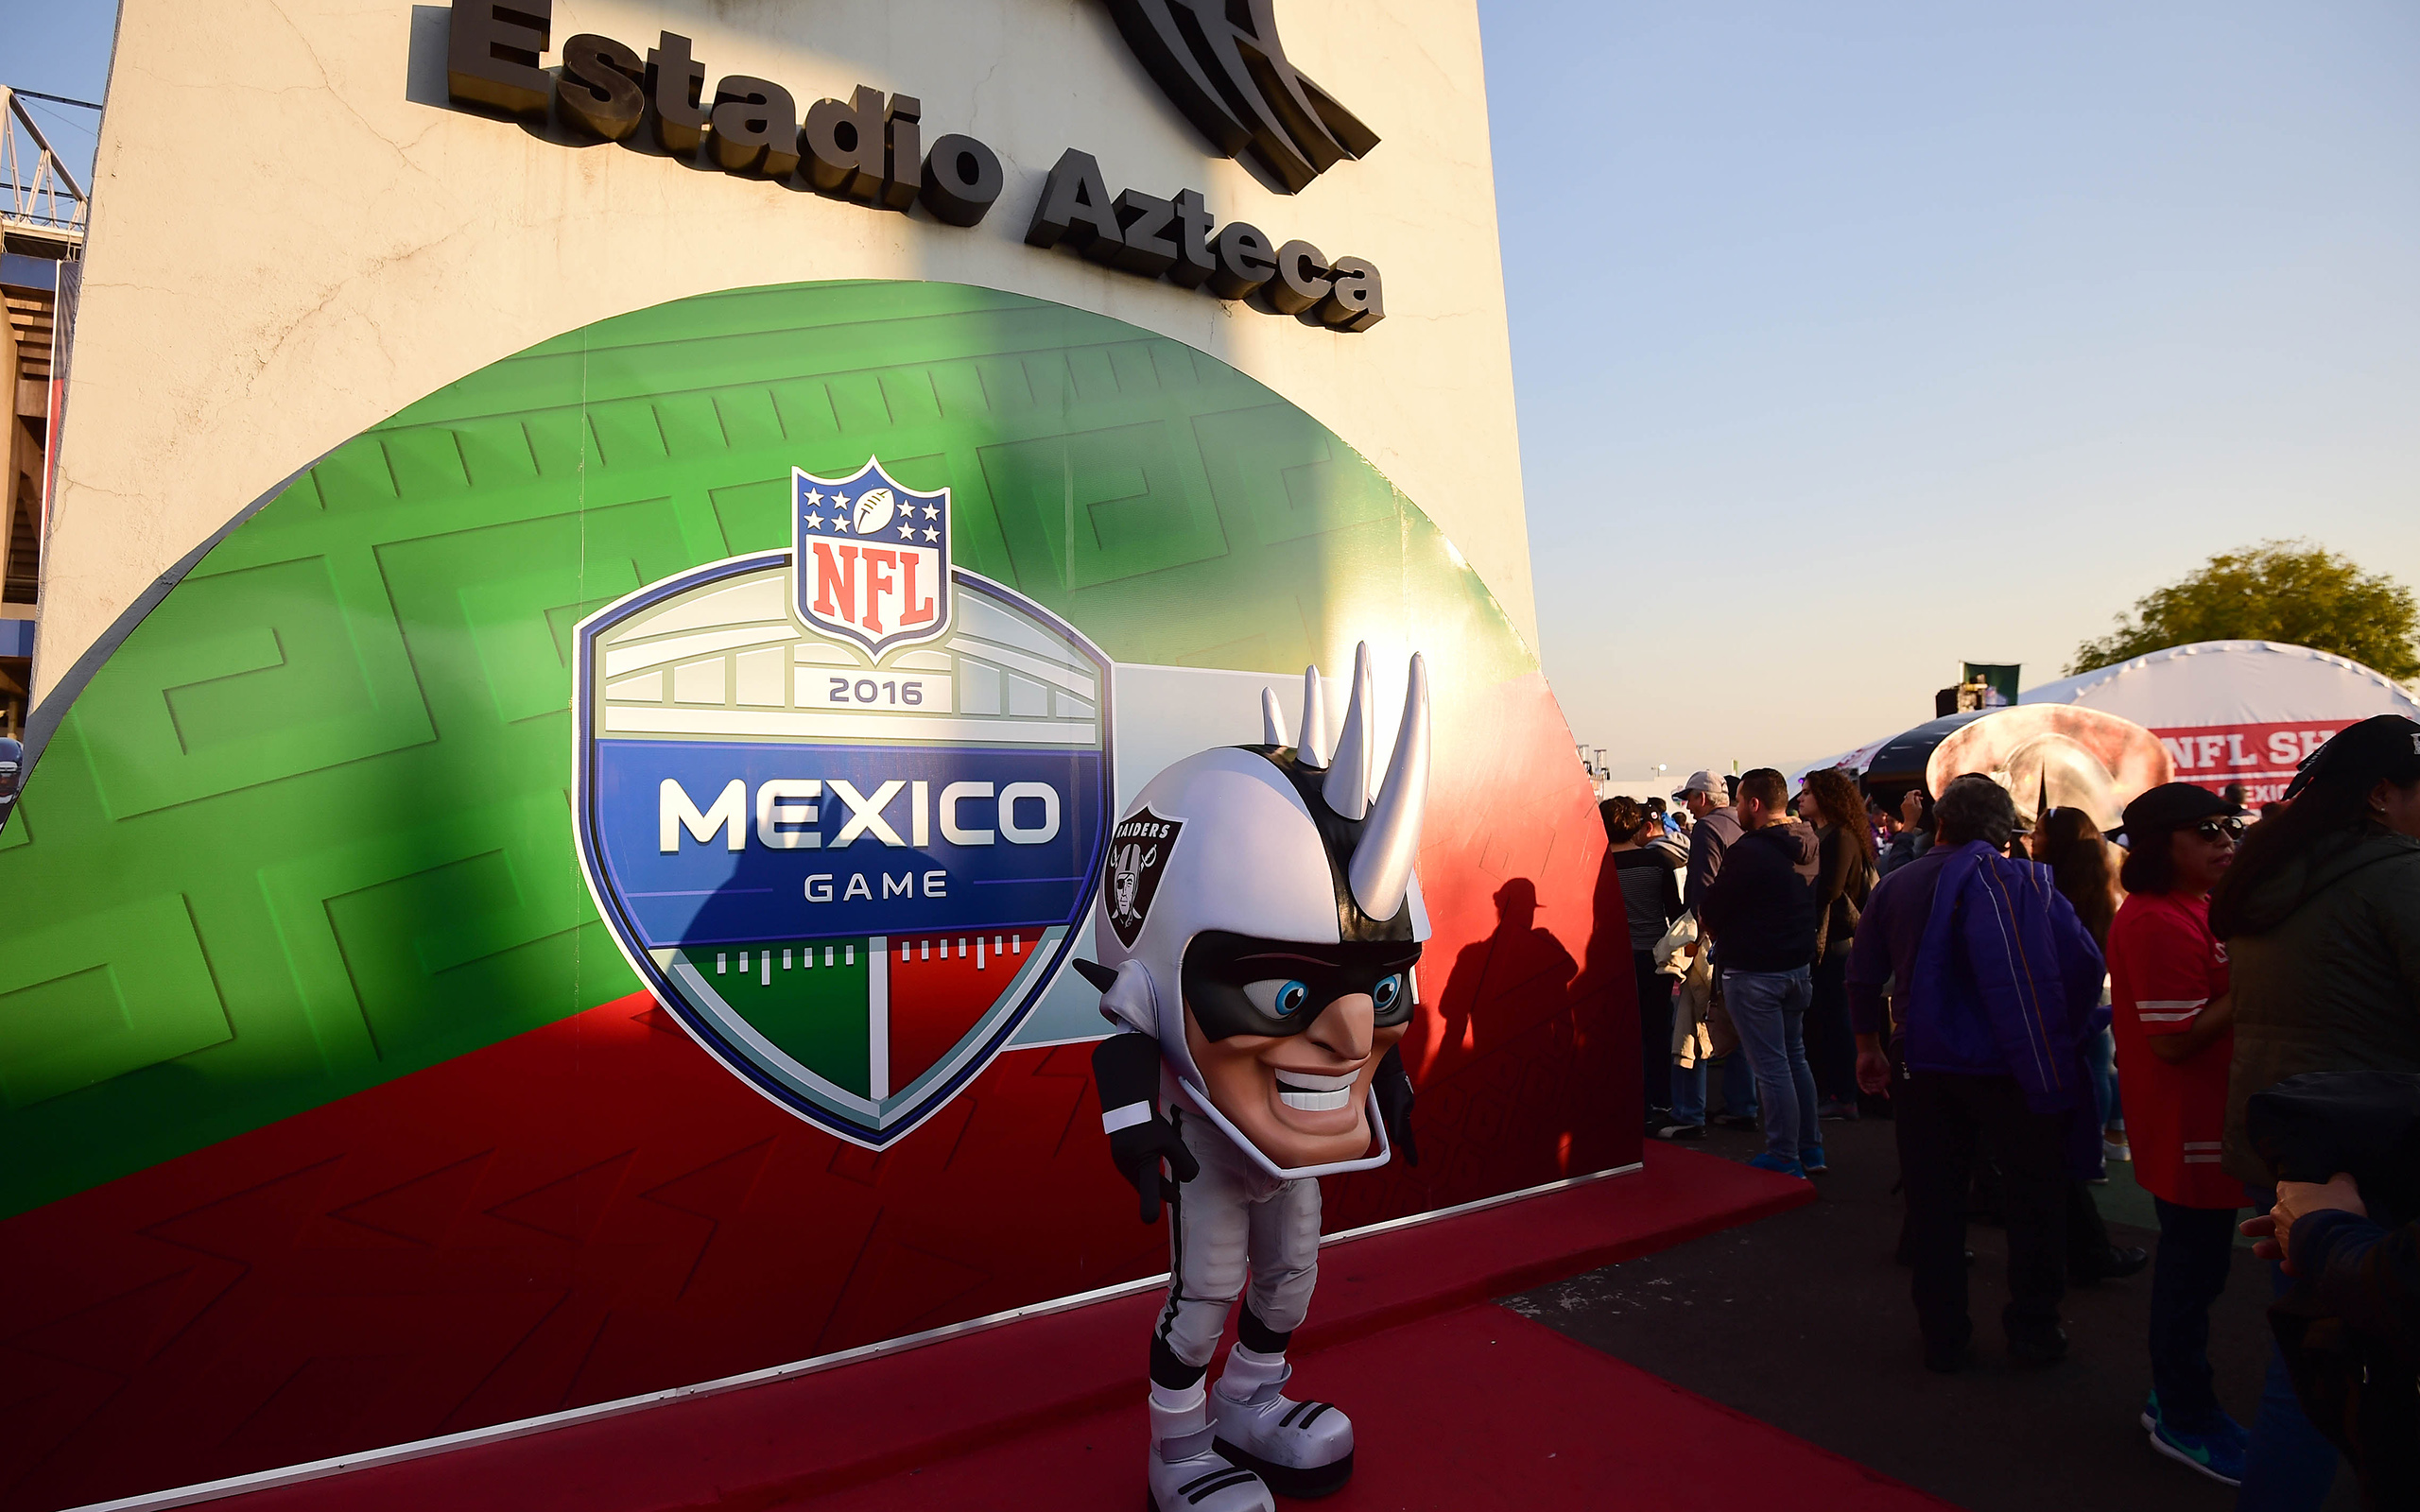 AMFOOT-NFL-MEXICO-FANS